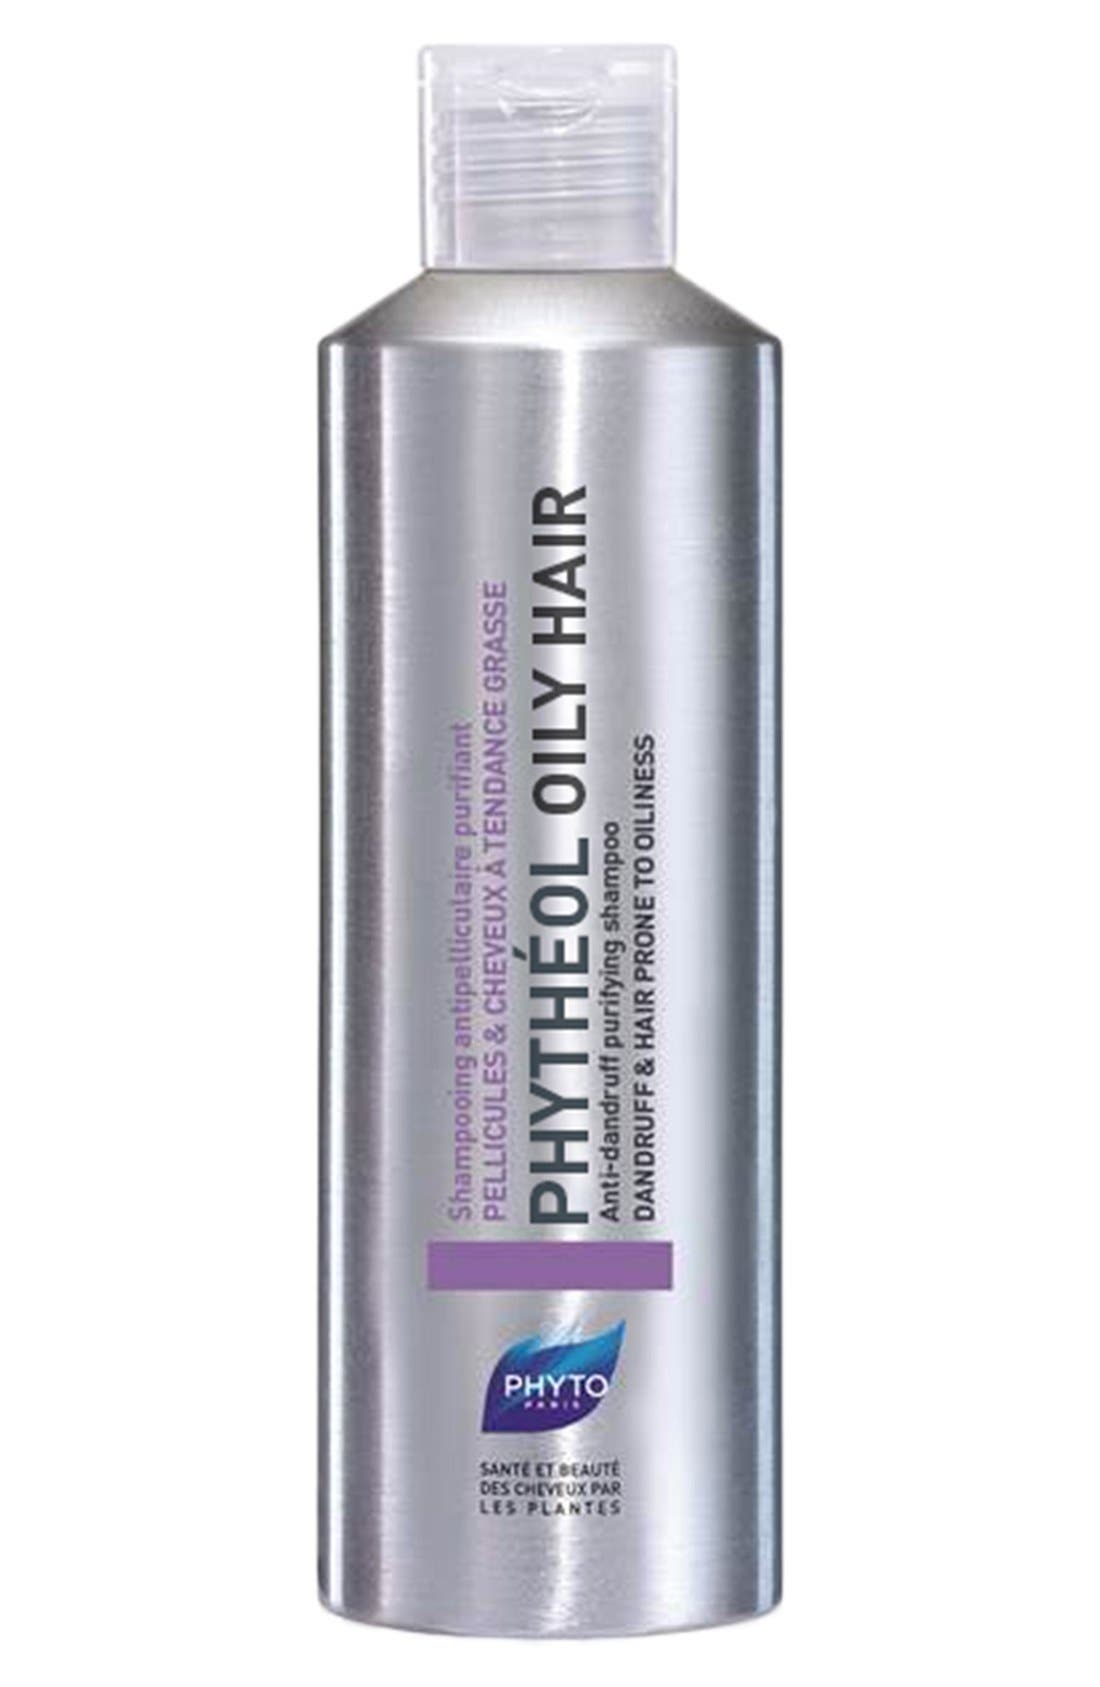 PHYTO Phythéol Oily Hair Anti-Dandruff Purifying Shampoo